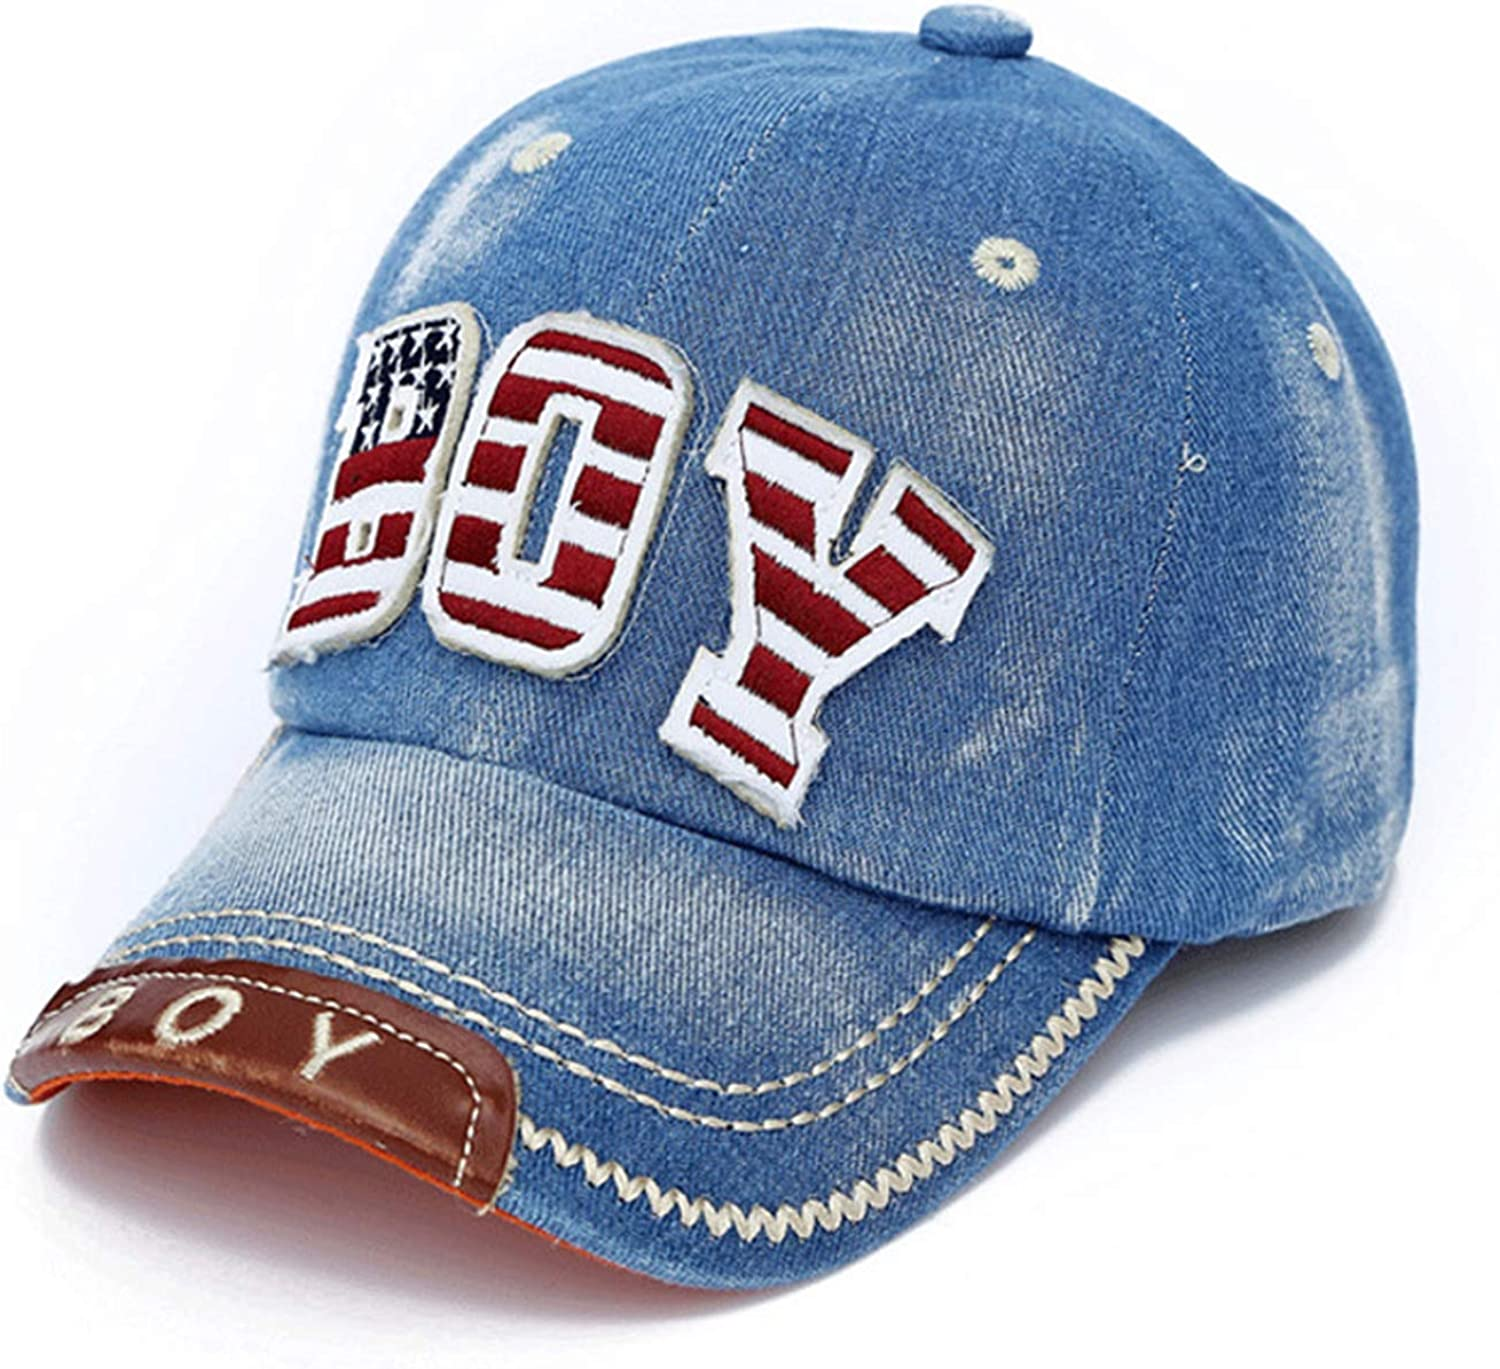 TOP BOY Baby Baseball Caps Kids Hip Hop Cap Boys Girls Summer Sun Hats Gorras Planas Enfants Casquette Gorras